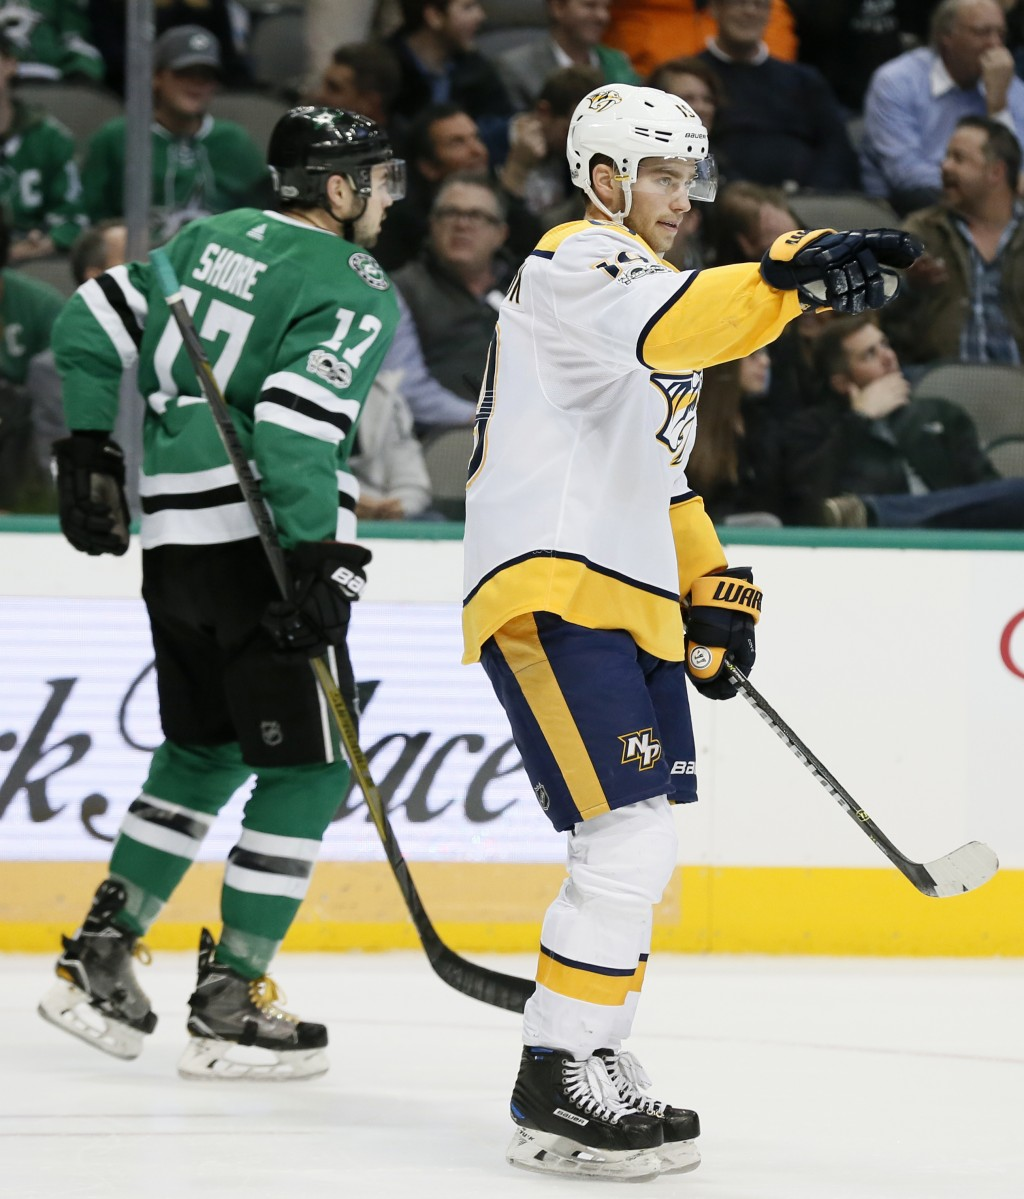 Nashville Predators center Calle Jarnkrok (19) celebrates his goal as Dallas Stars' Devin Shore (17) skates away during the second period of an NHL ho